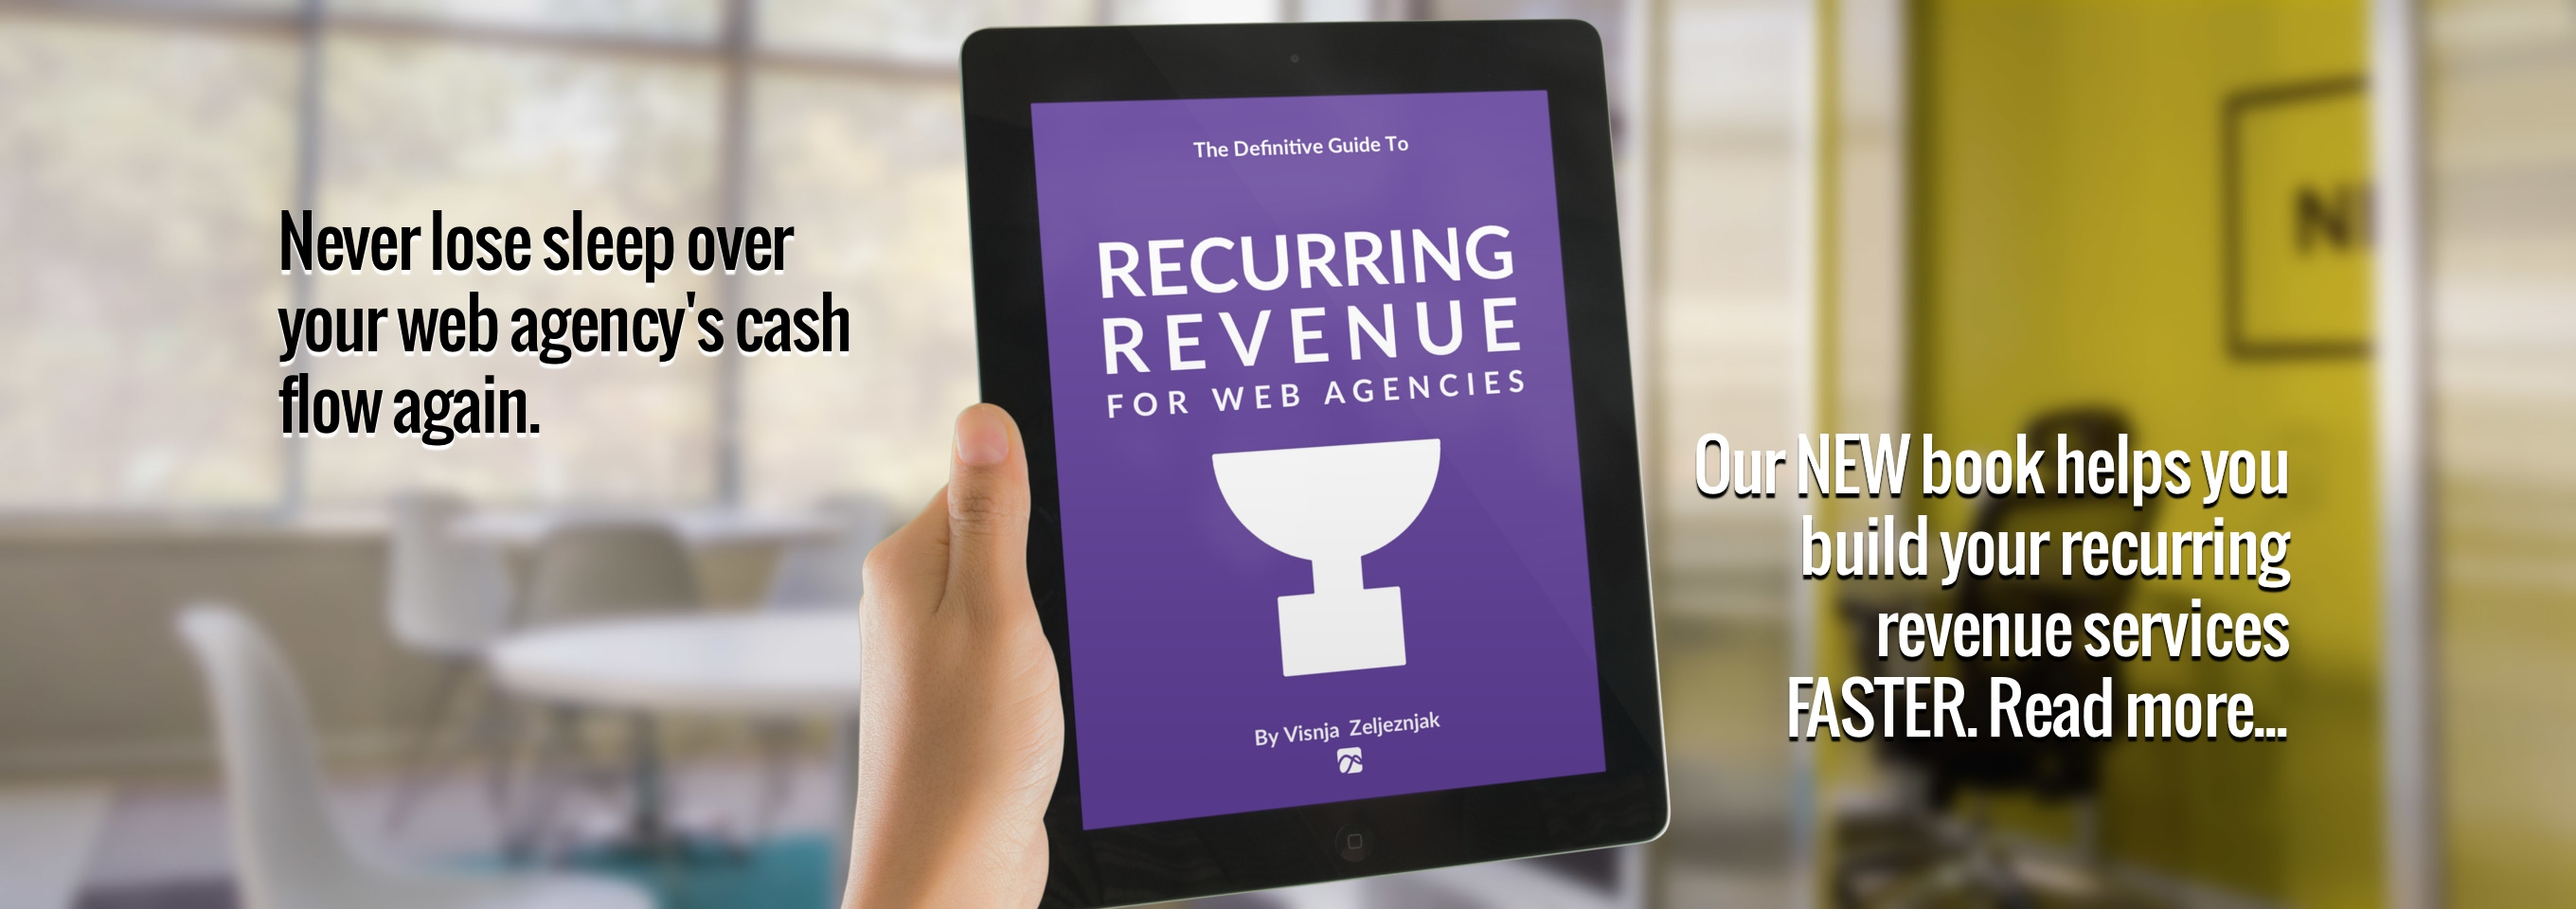 Recurring Revenue for Web Agencies - the Book by Visnja Zeljeznjak, Simpfinity.com